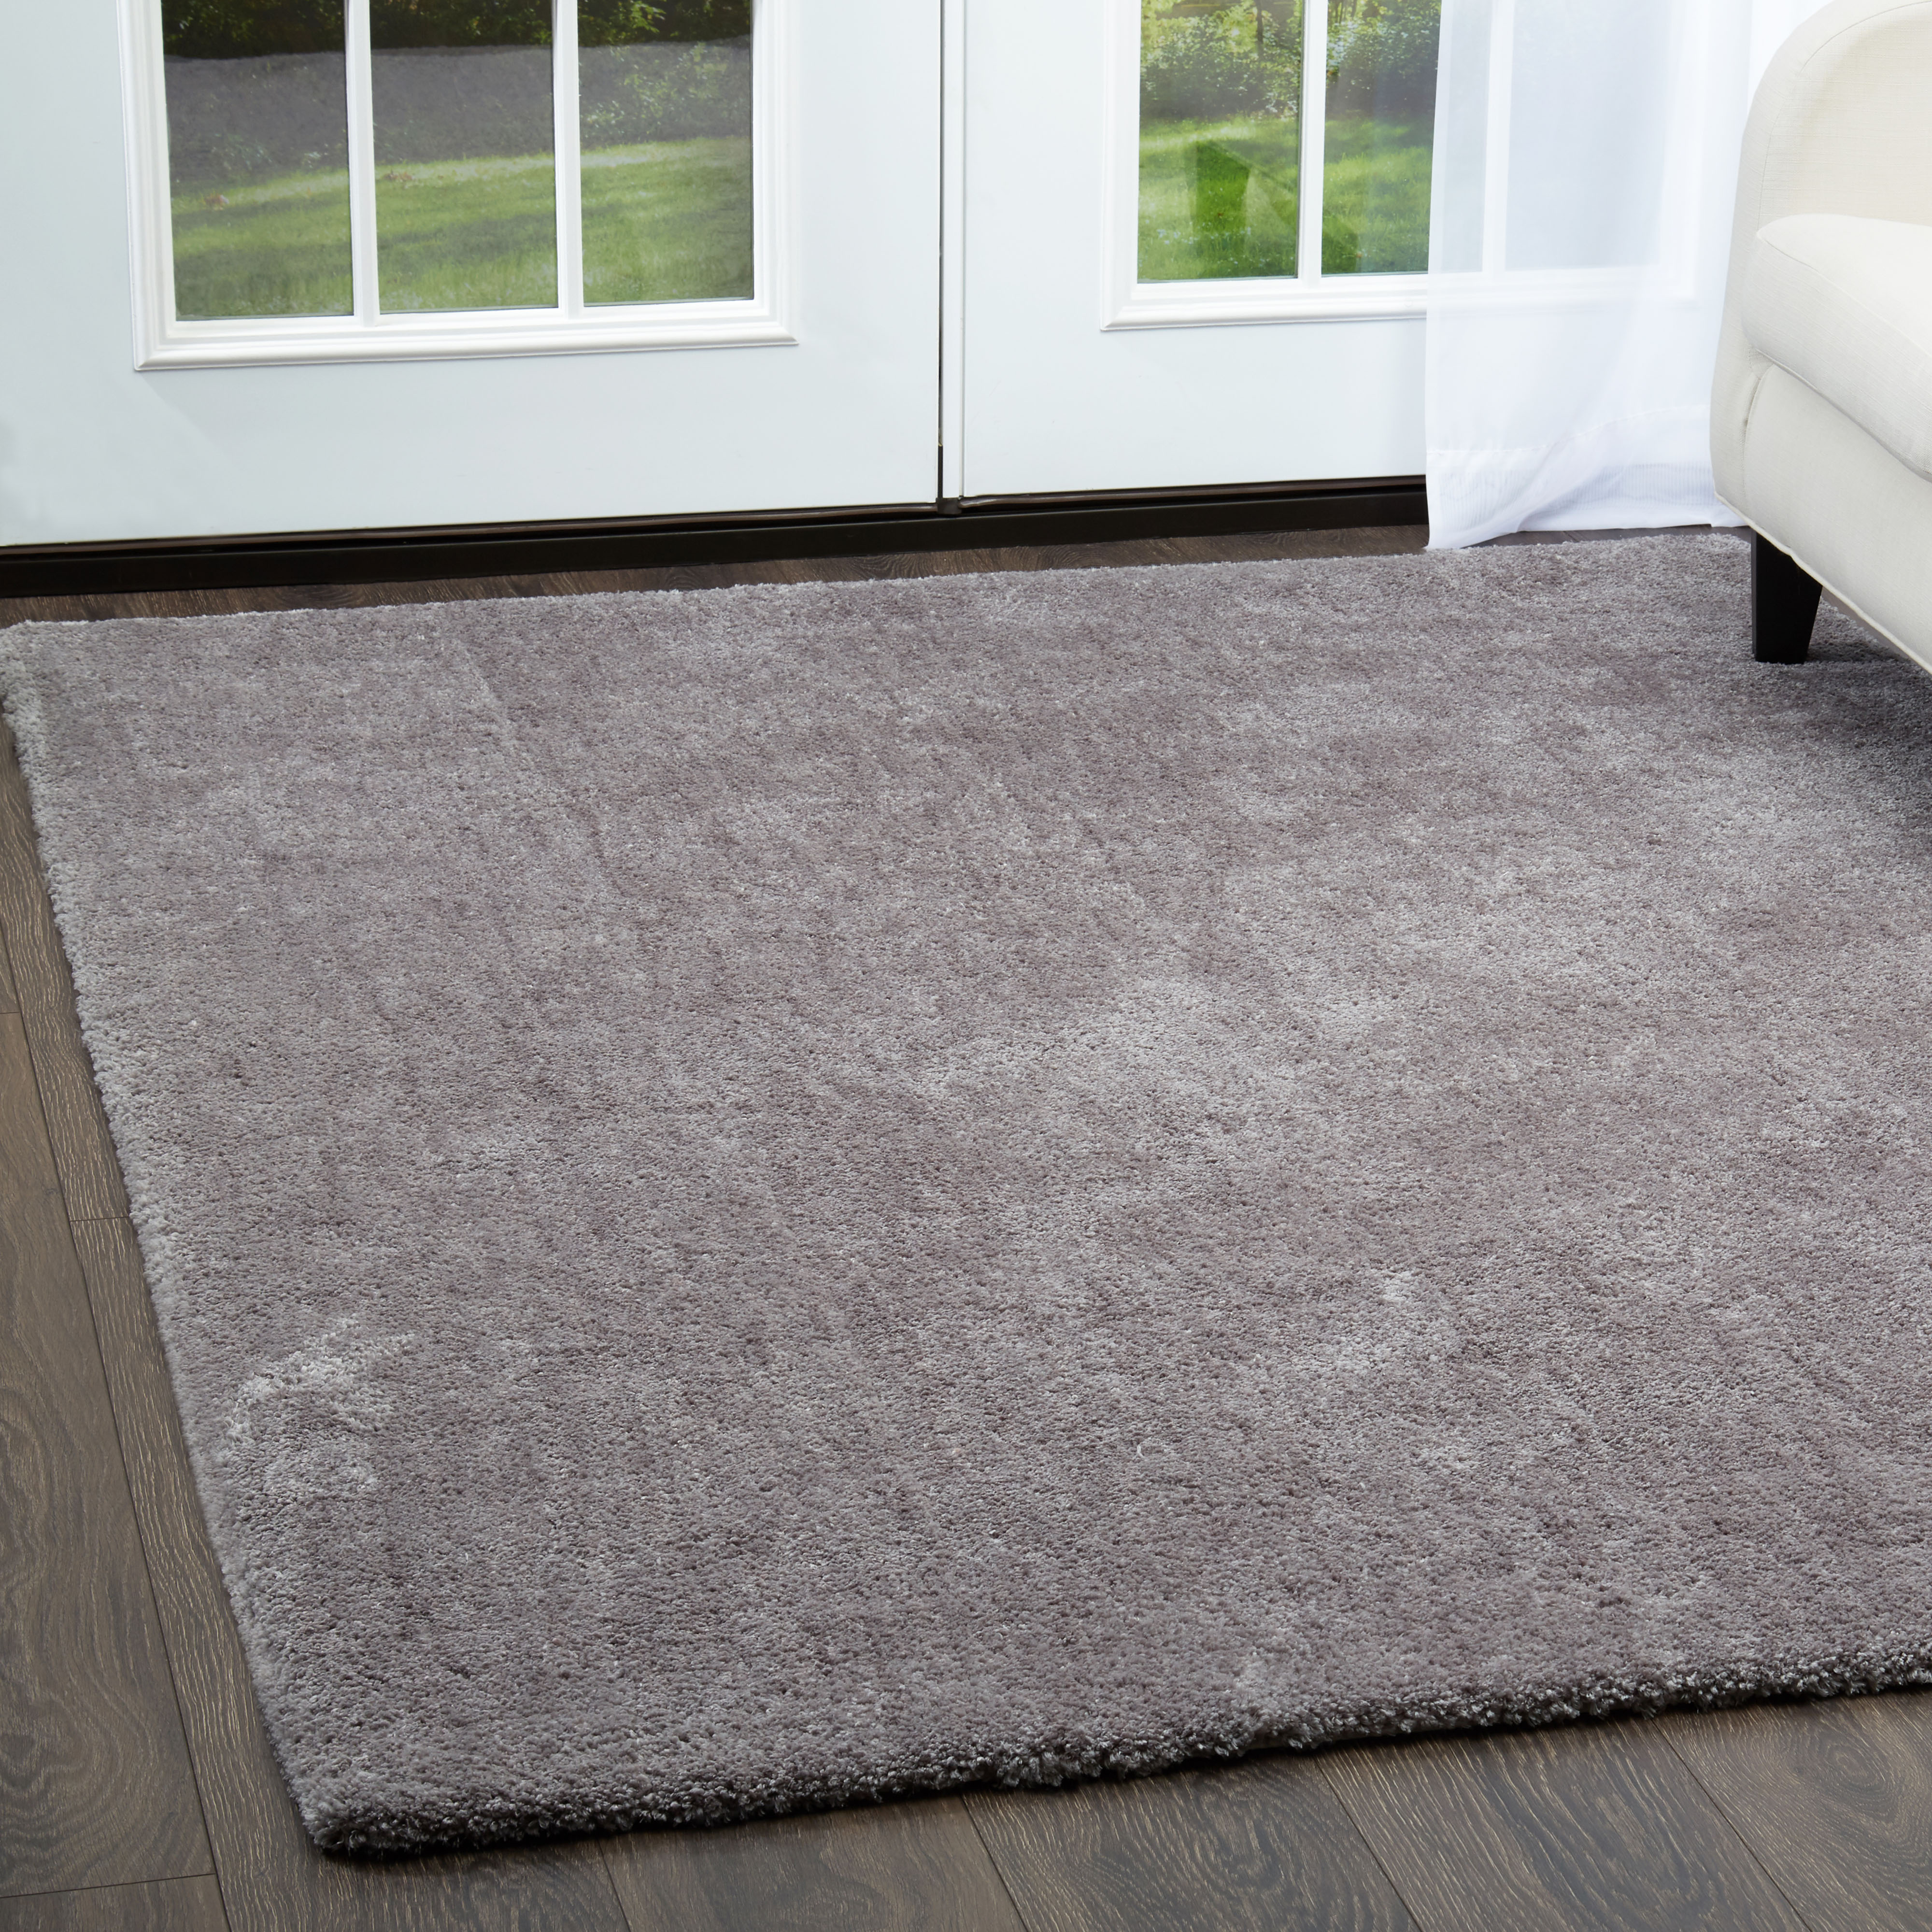 nicole solid line heavenly rug this clothing by area and special of rugs are shag nmhvs as flokati nm itm blend carpet the designer miller cotton collection gray comfortable s